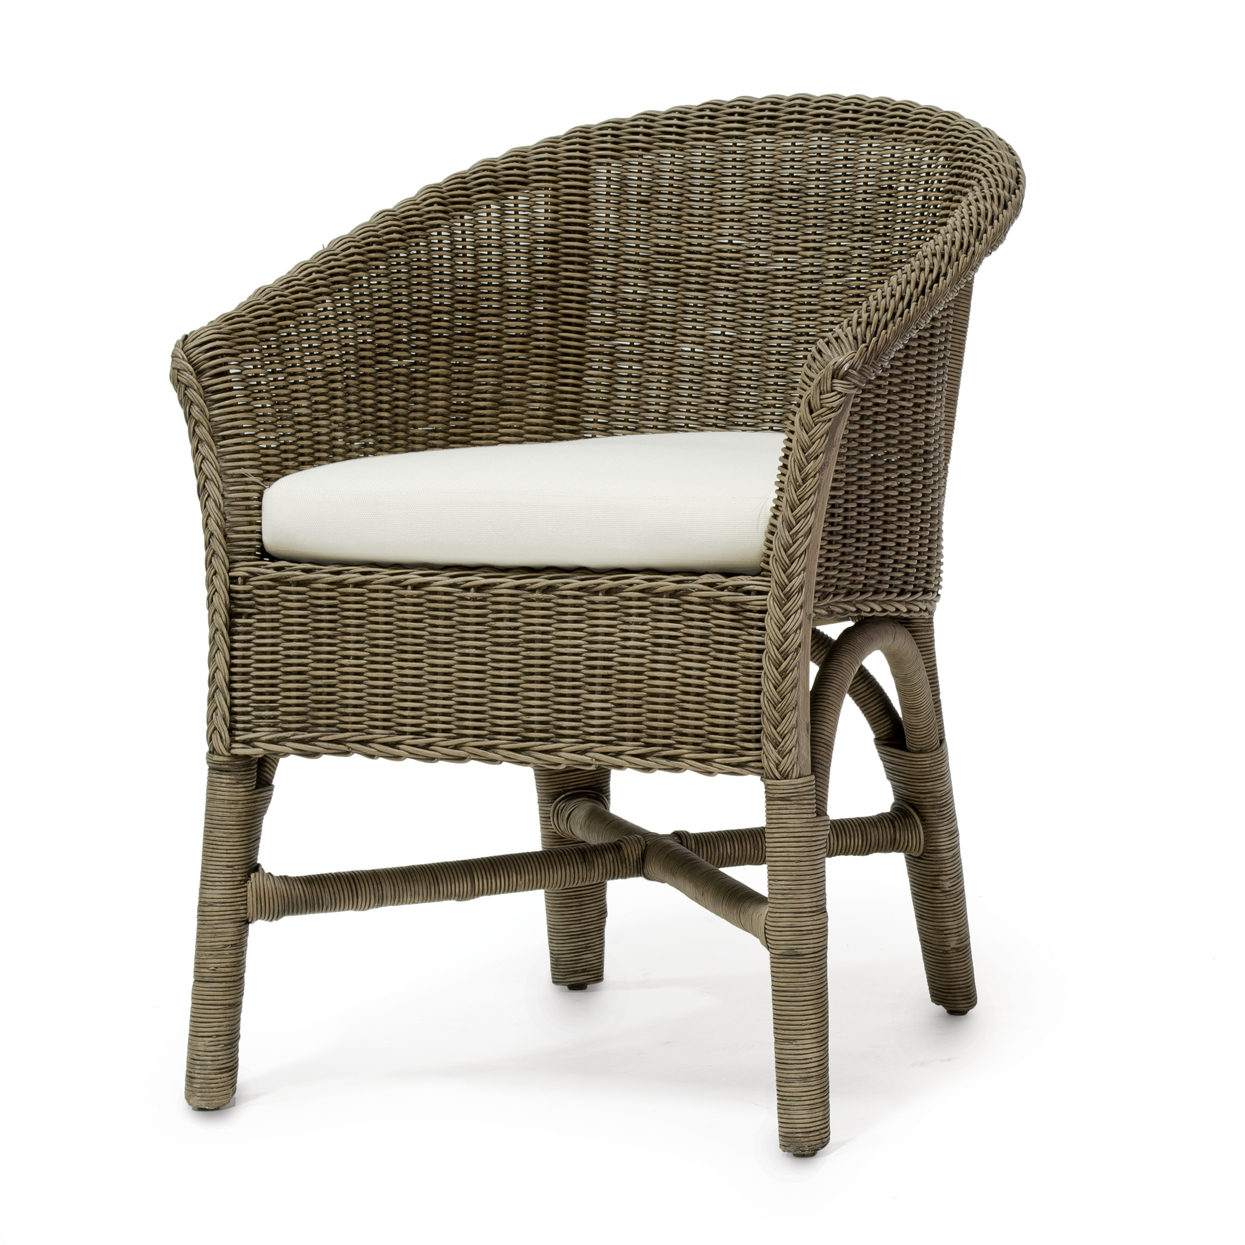 Charmant Bistro Chair